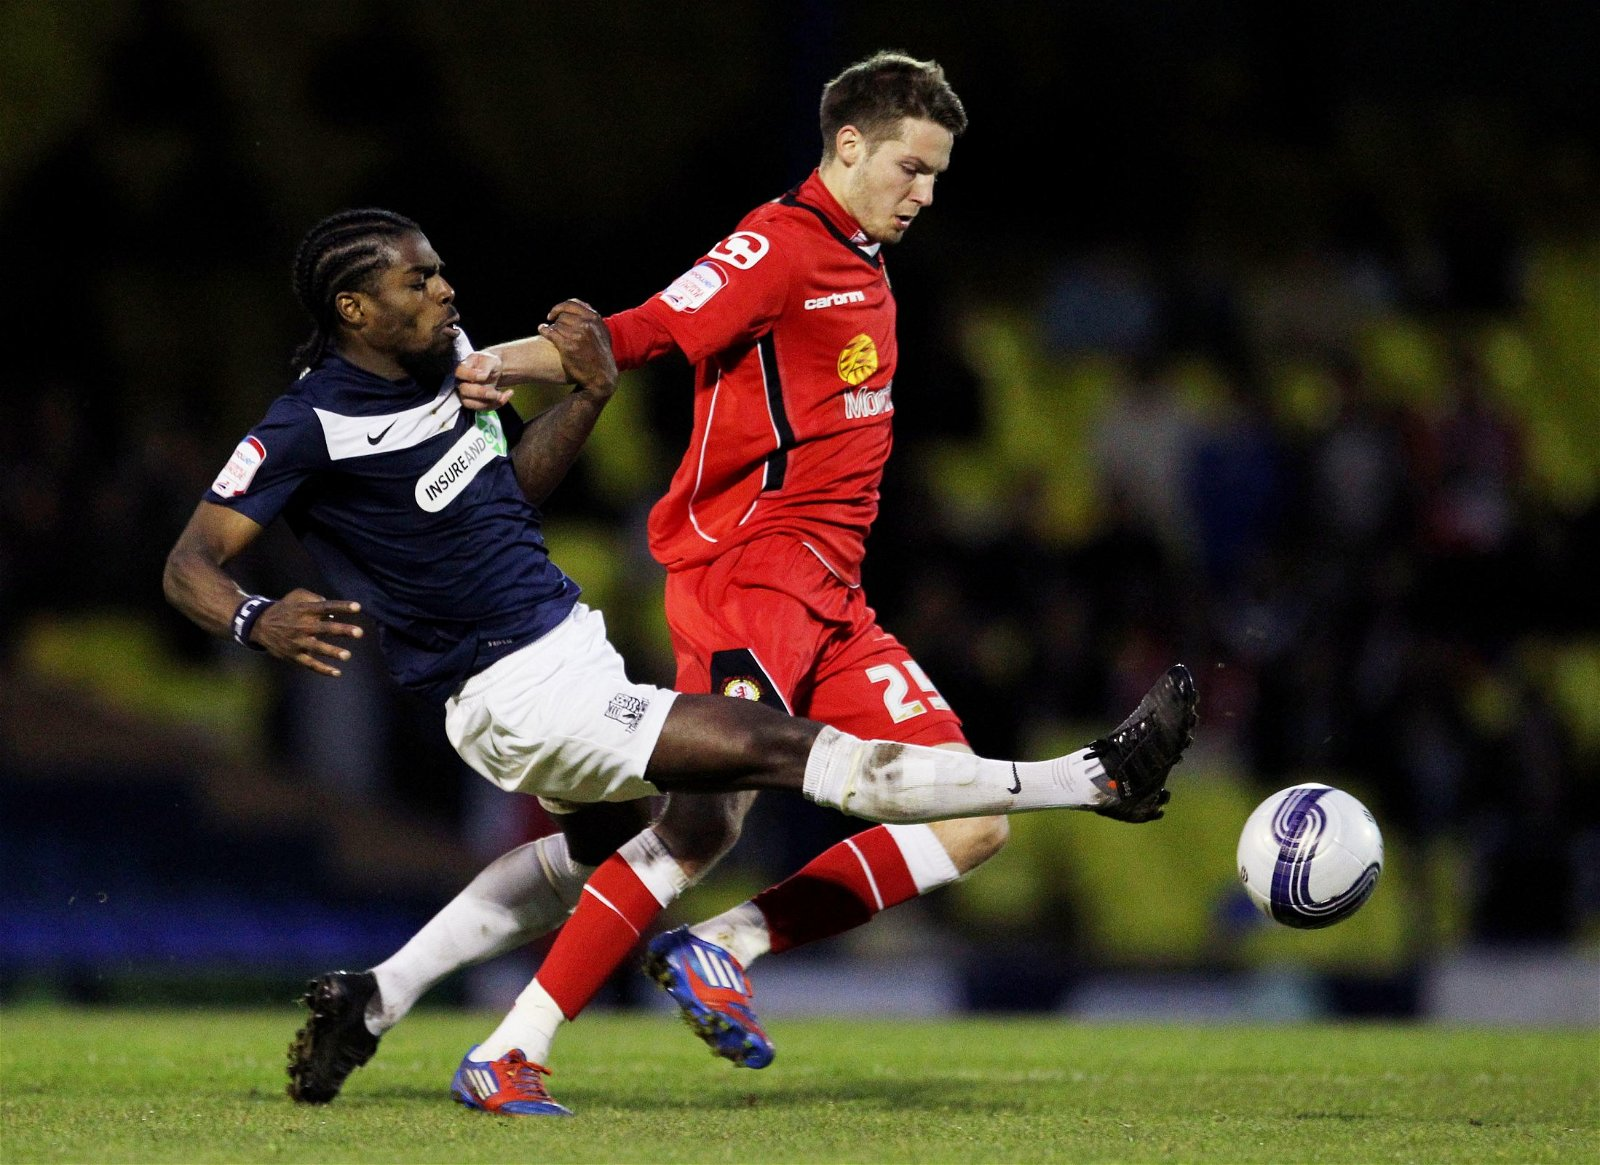 Nick Powell for Crewe Alexandra